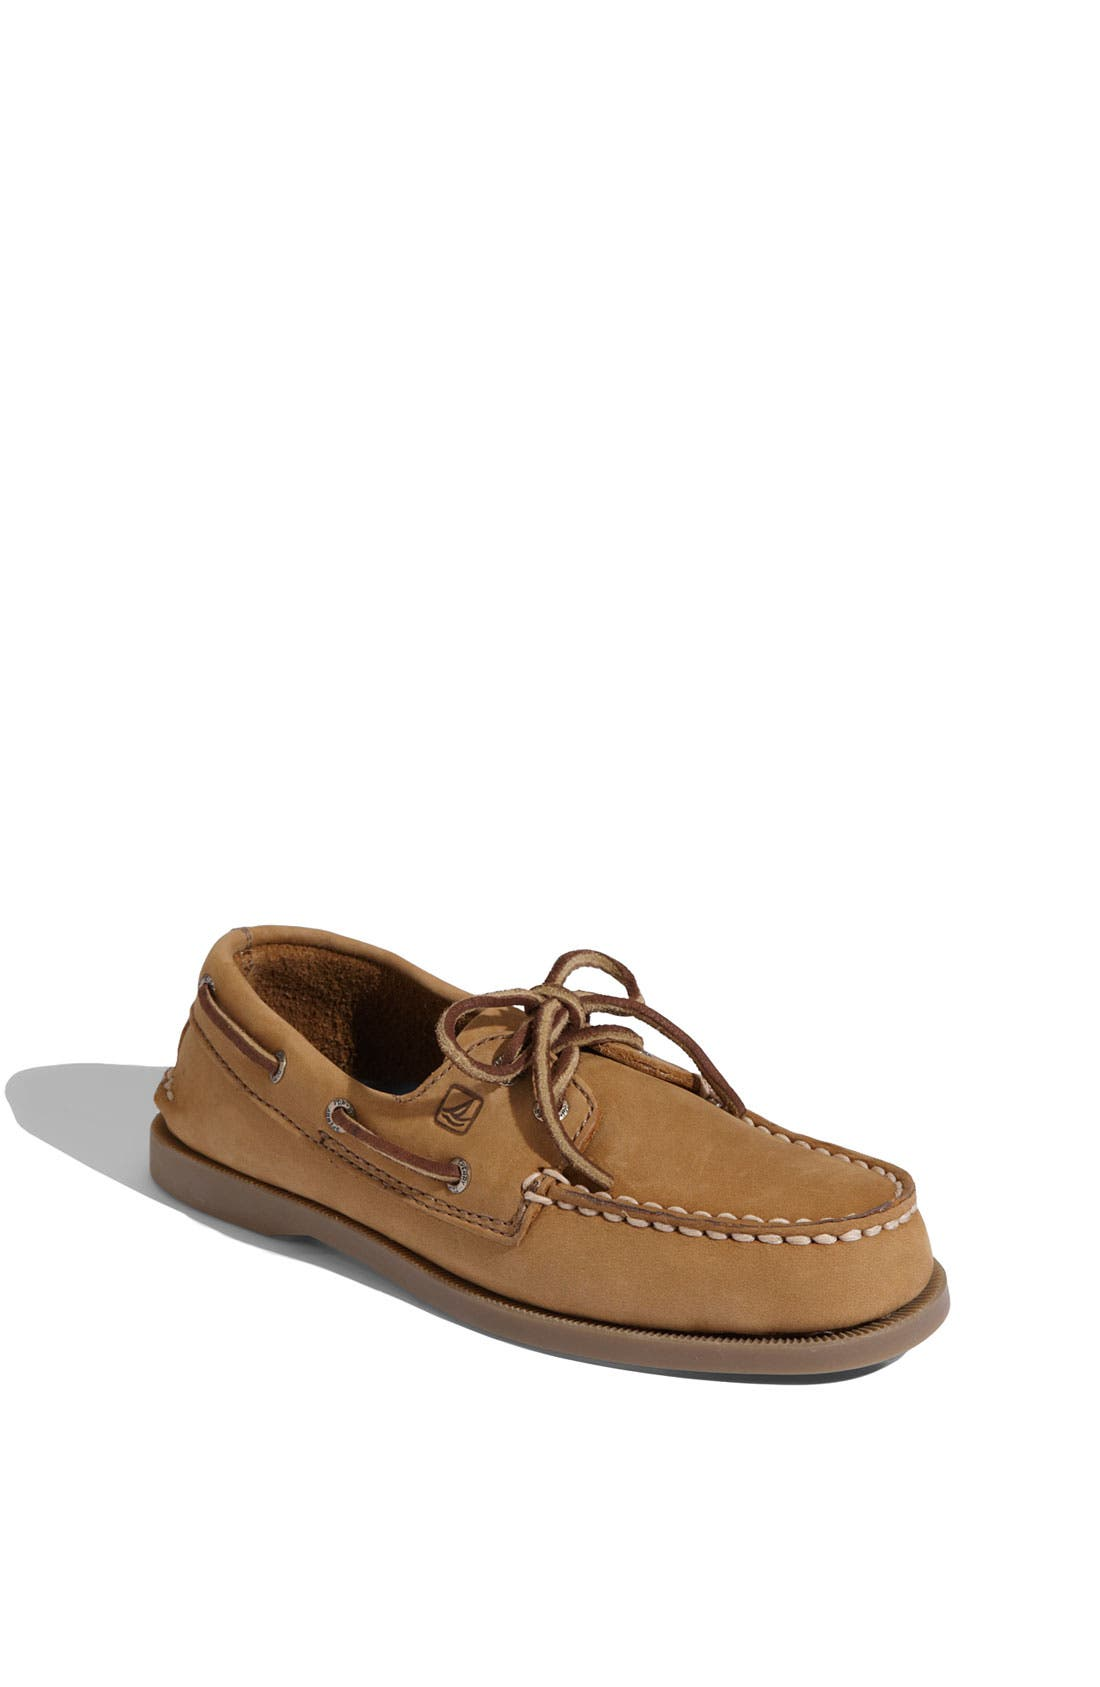 Alternate Image 1 Selected - Sperry Kids 'Authentic Original' Boat Shoe (Walker & Toddler)